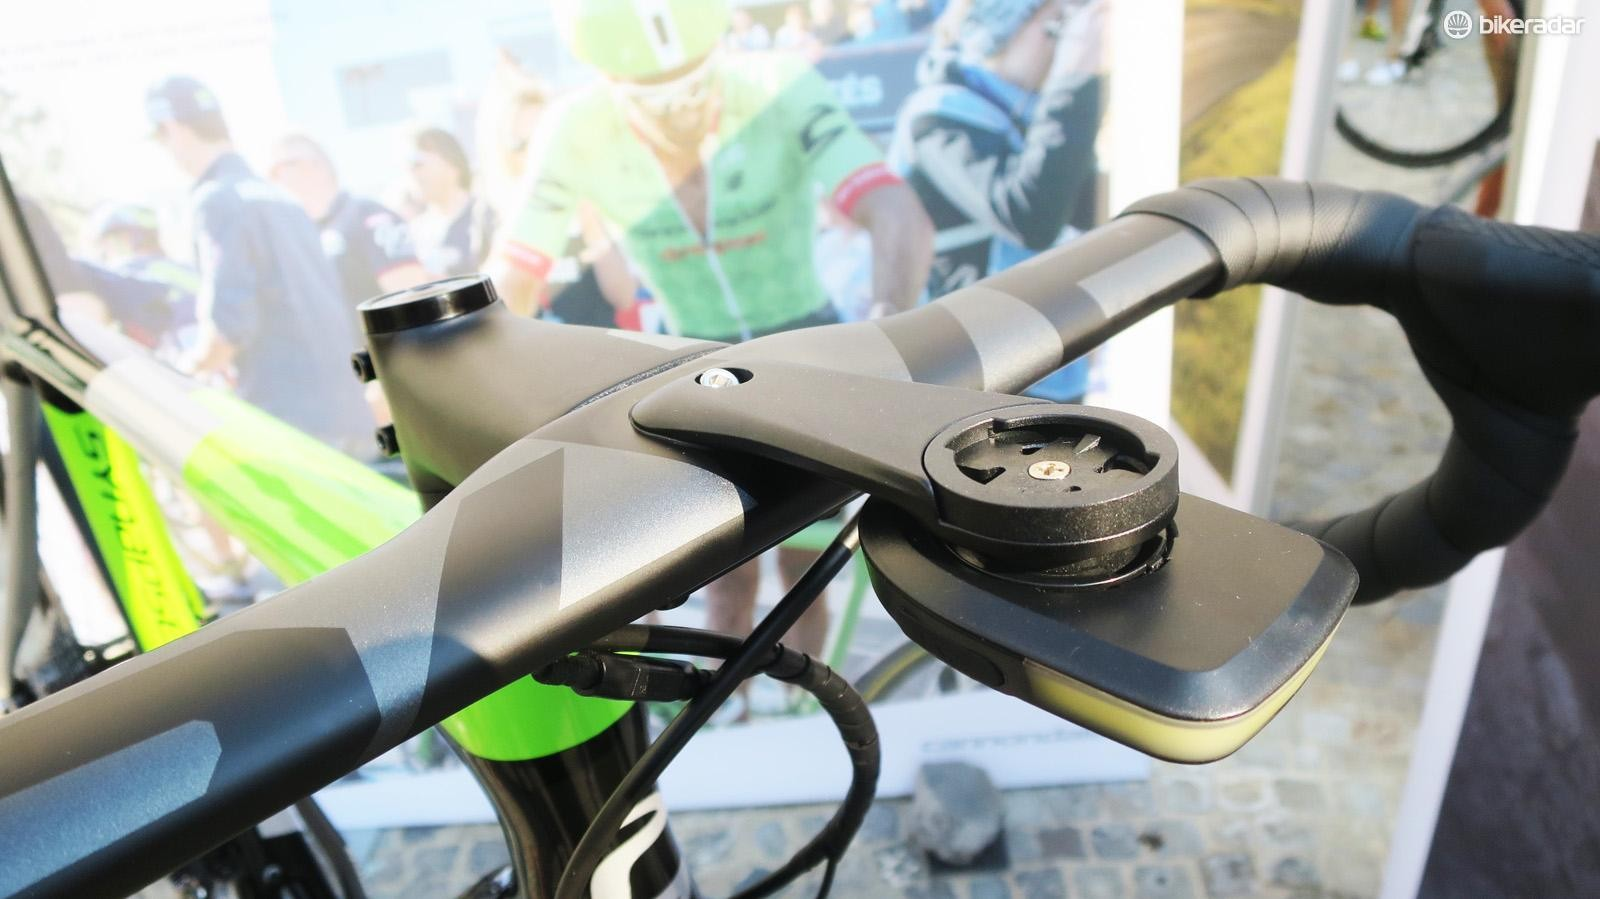 The SAVE Systembar comes with both an integrated Garmin mount and a new Lumaray light from Fabric